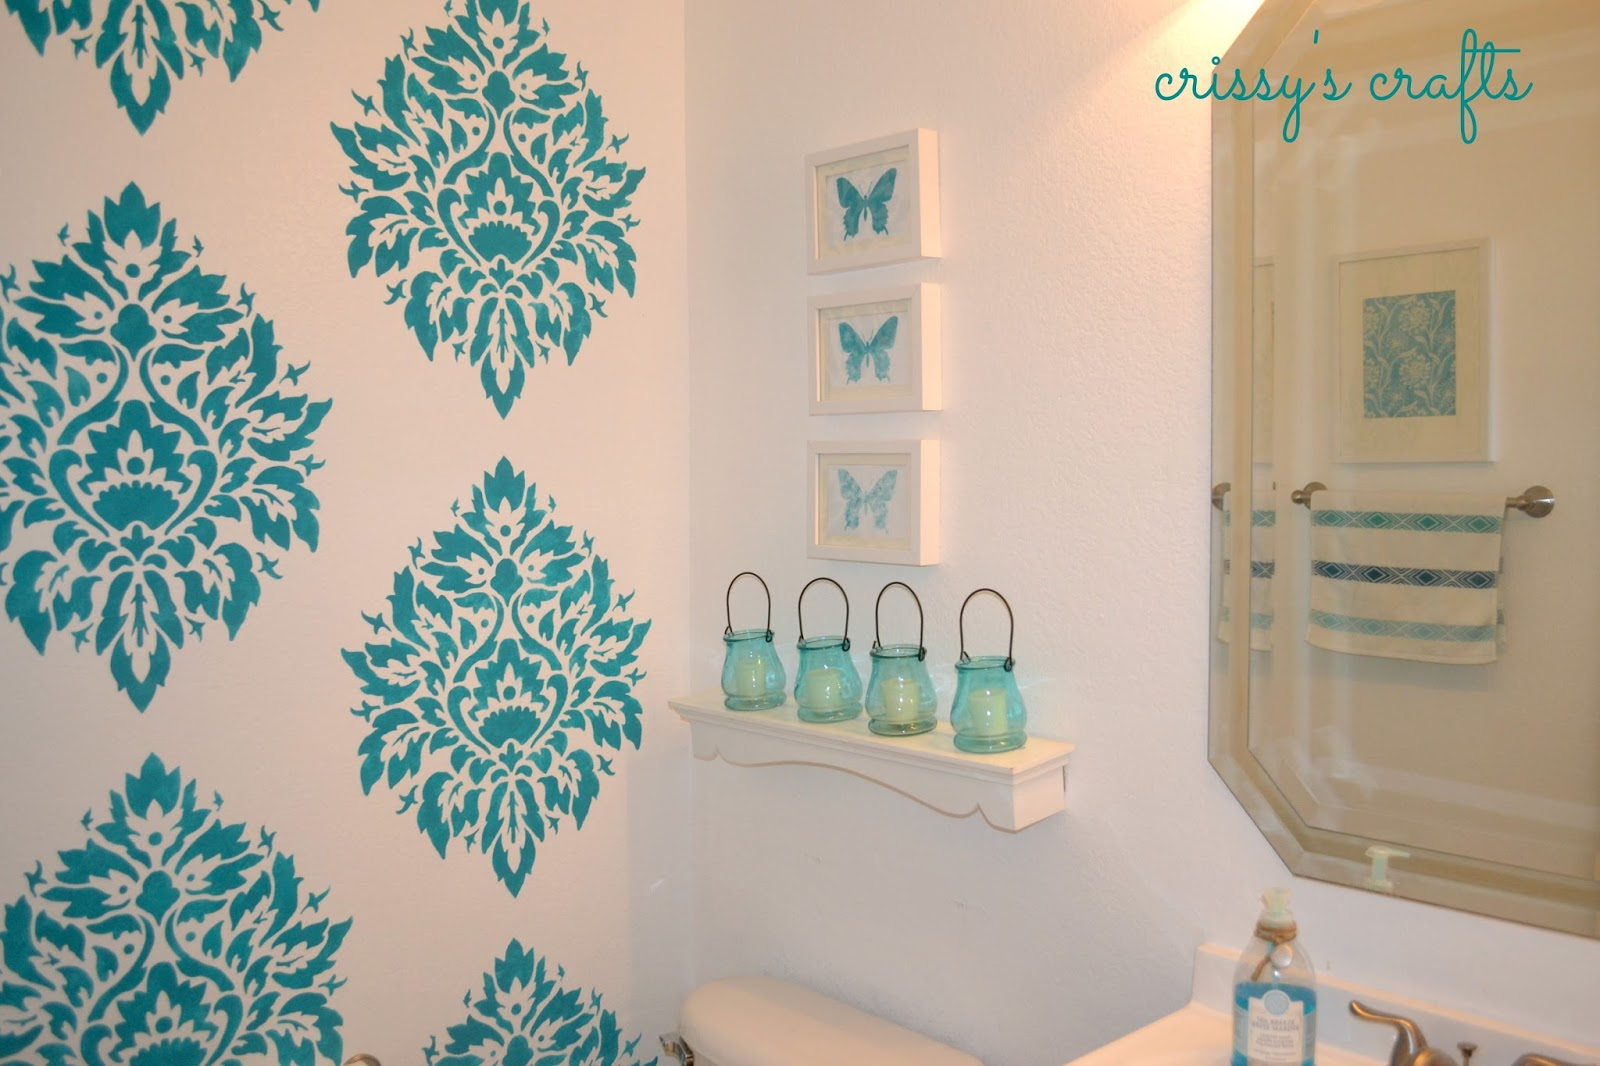 Crissys crafts powder room stenciled accent wall powder room stenciled accent wall amipublicfo Images